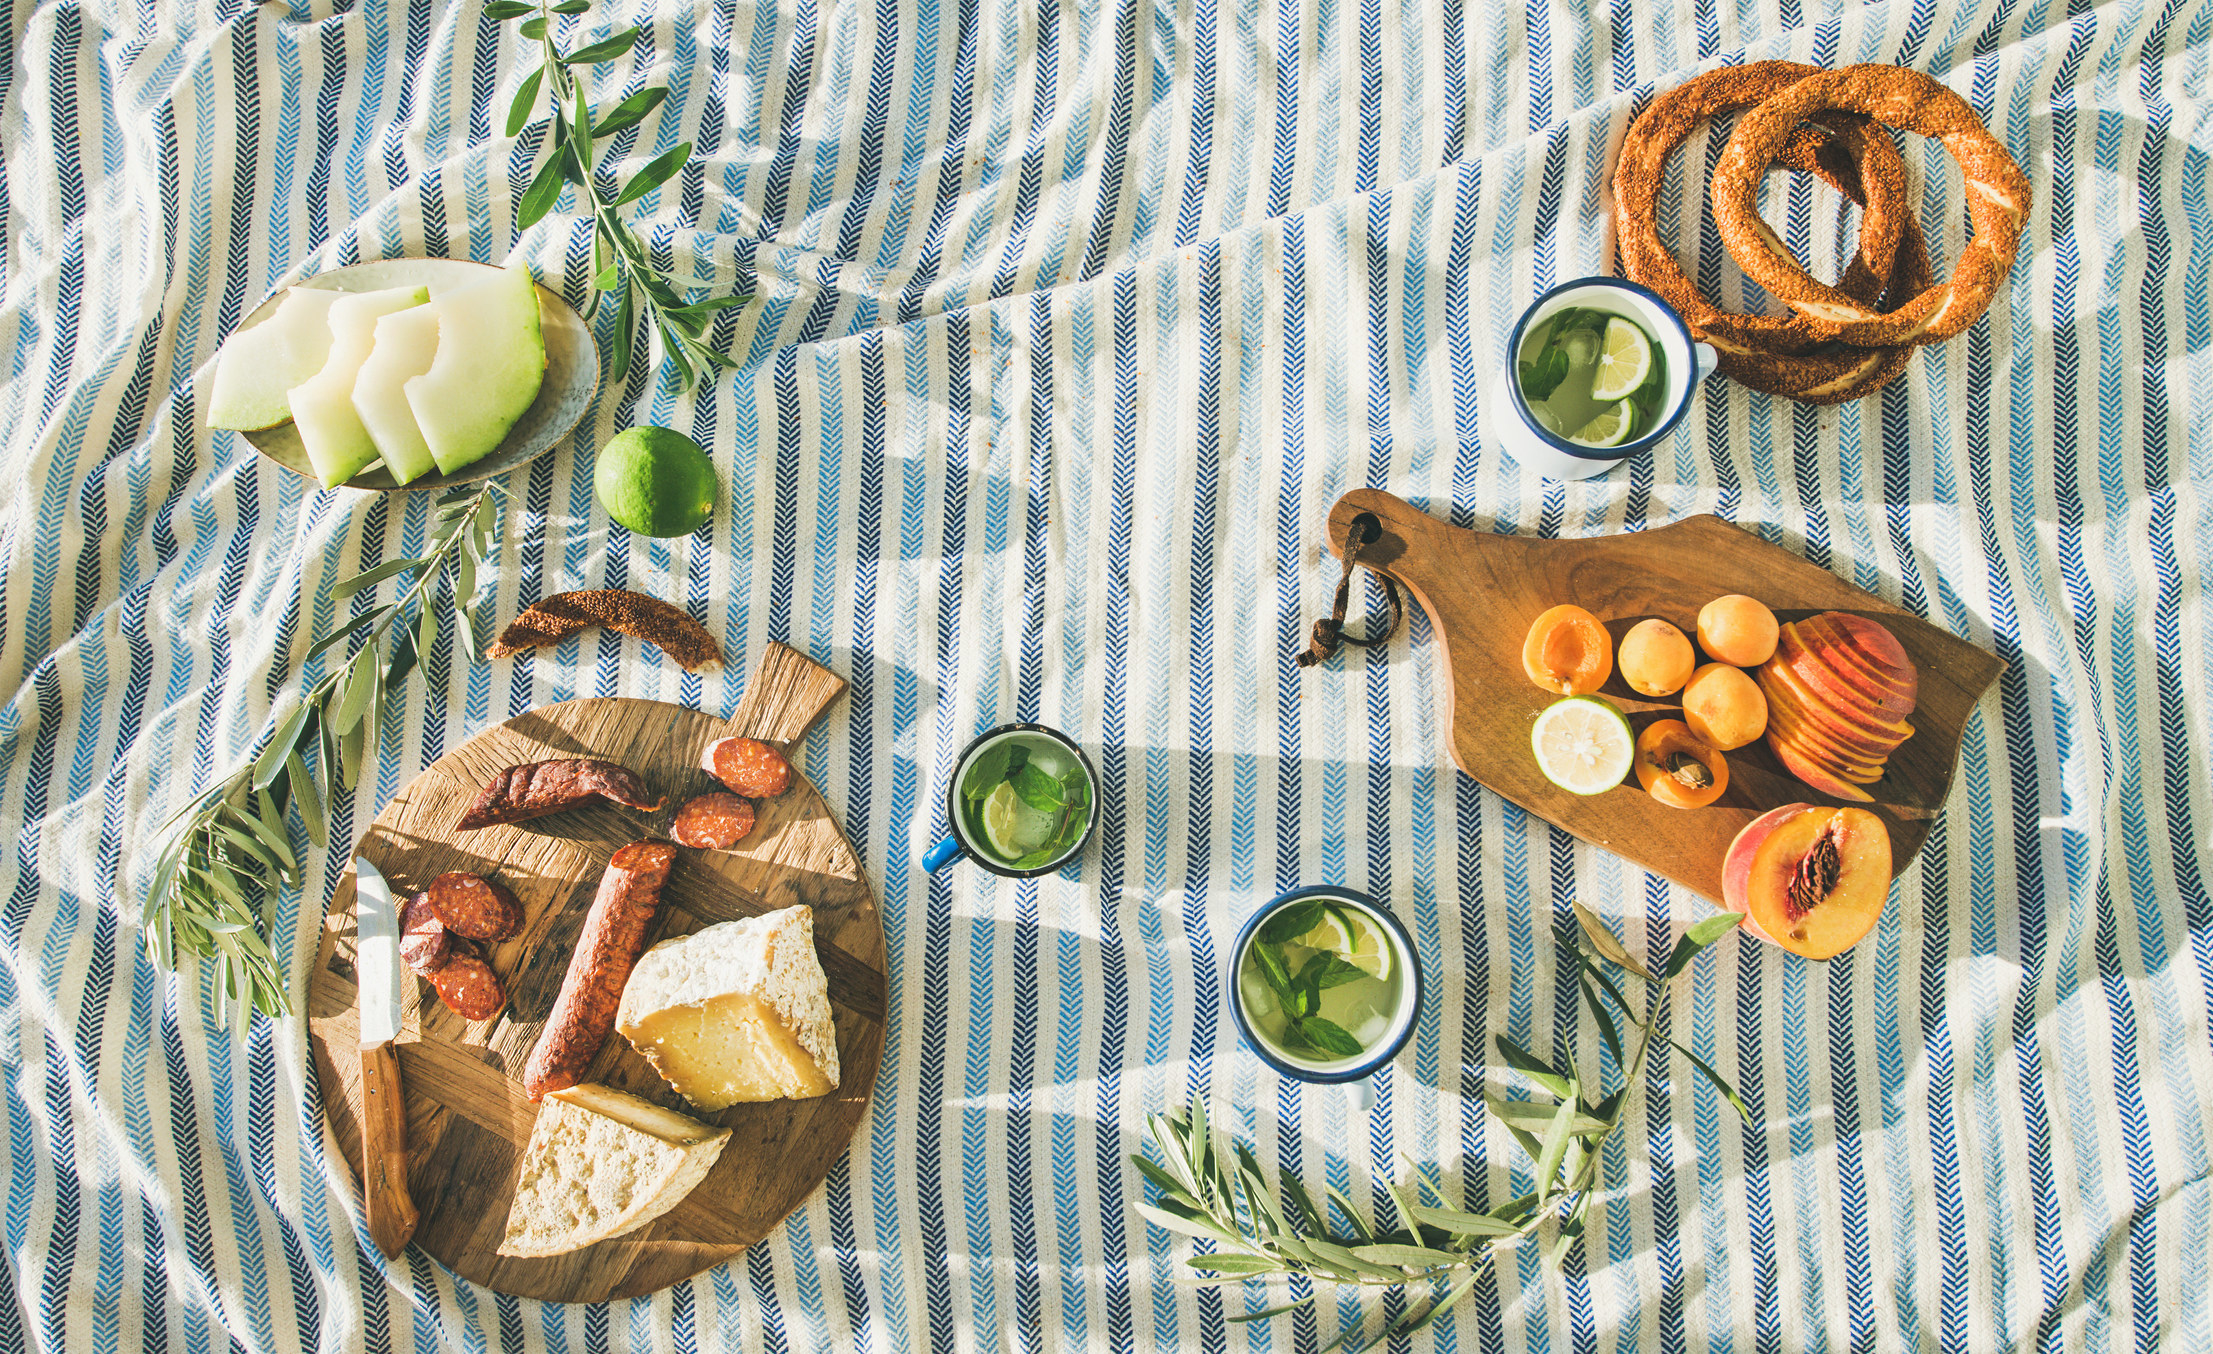 summer picnic with blue, white and navy striped blanket under three small platters of fruits with cheese, peaches, pretzels, lime and another small plate with a side of fruit